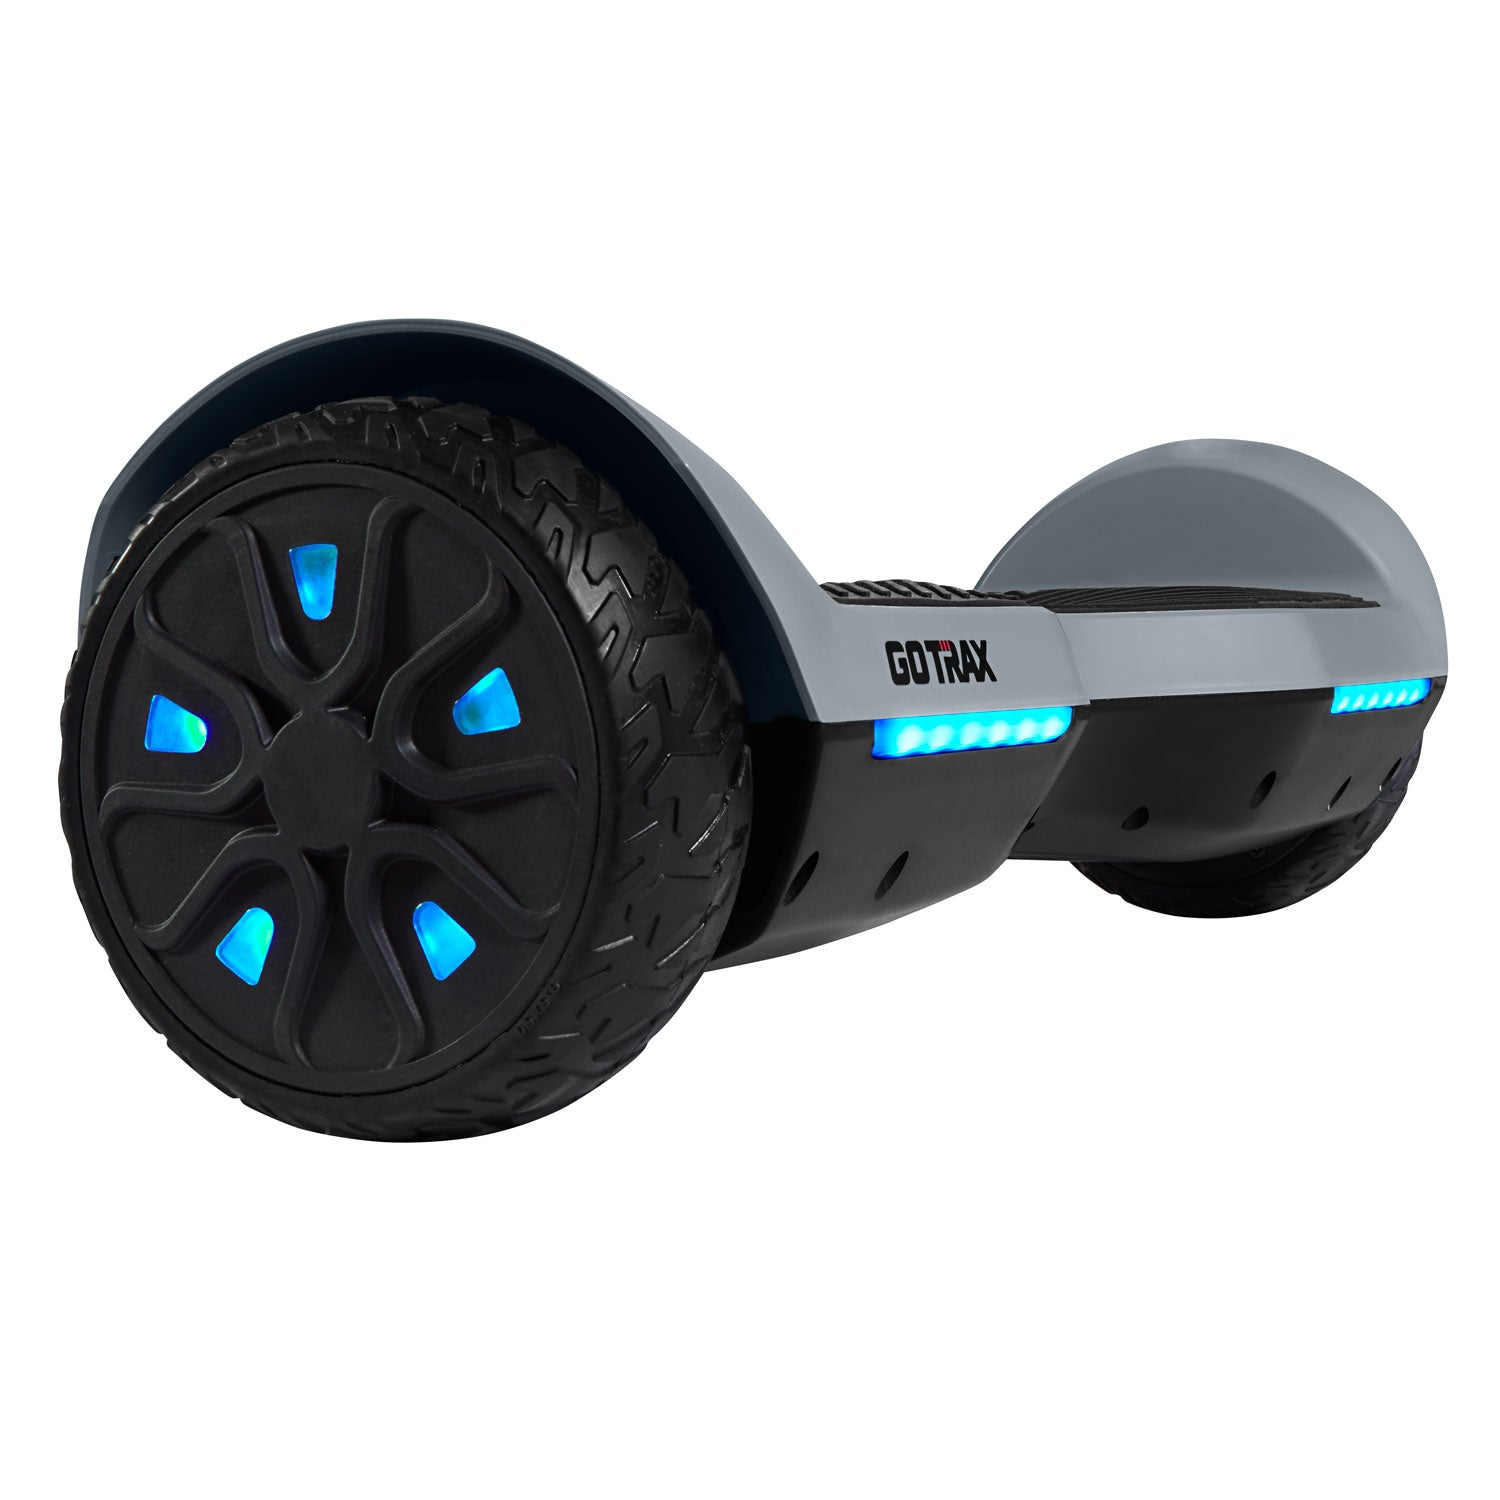 gray srx a6 bluetooth hoverboard Main image